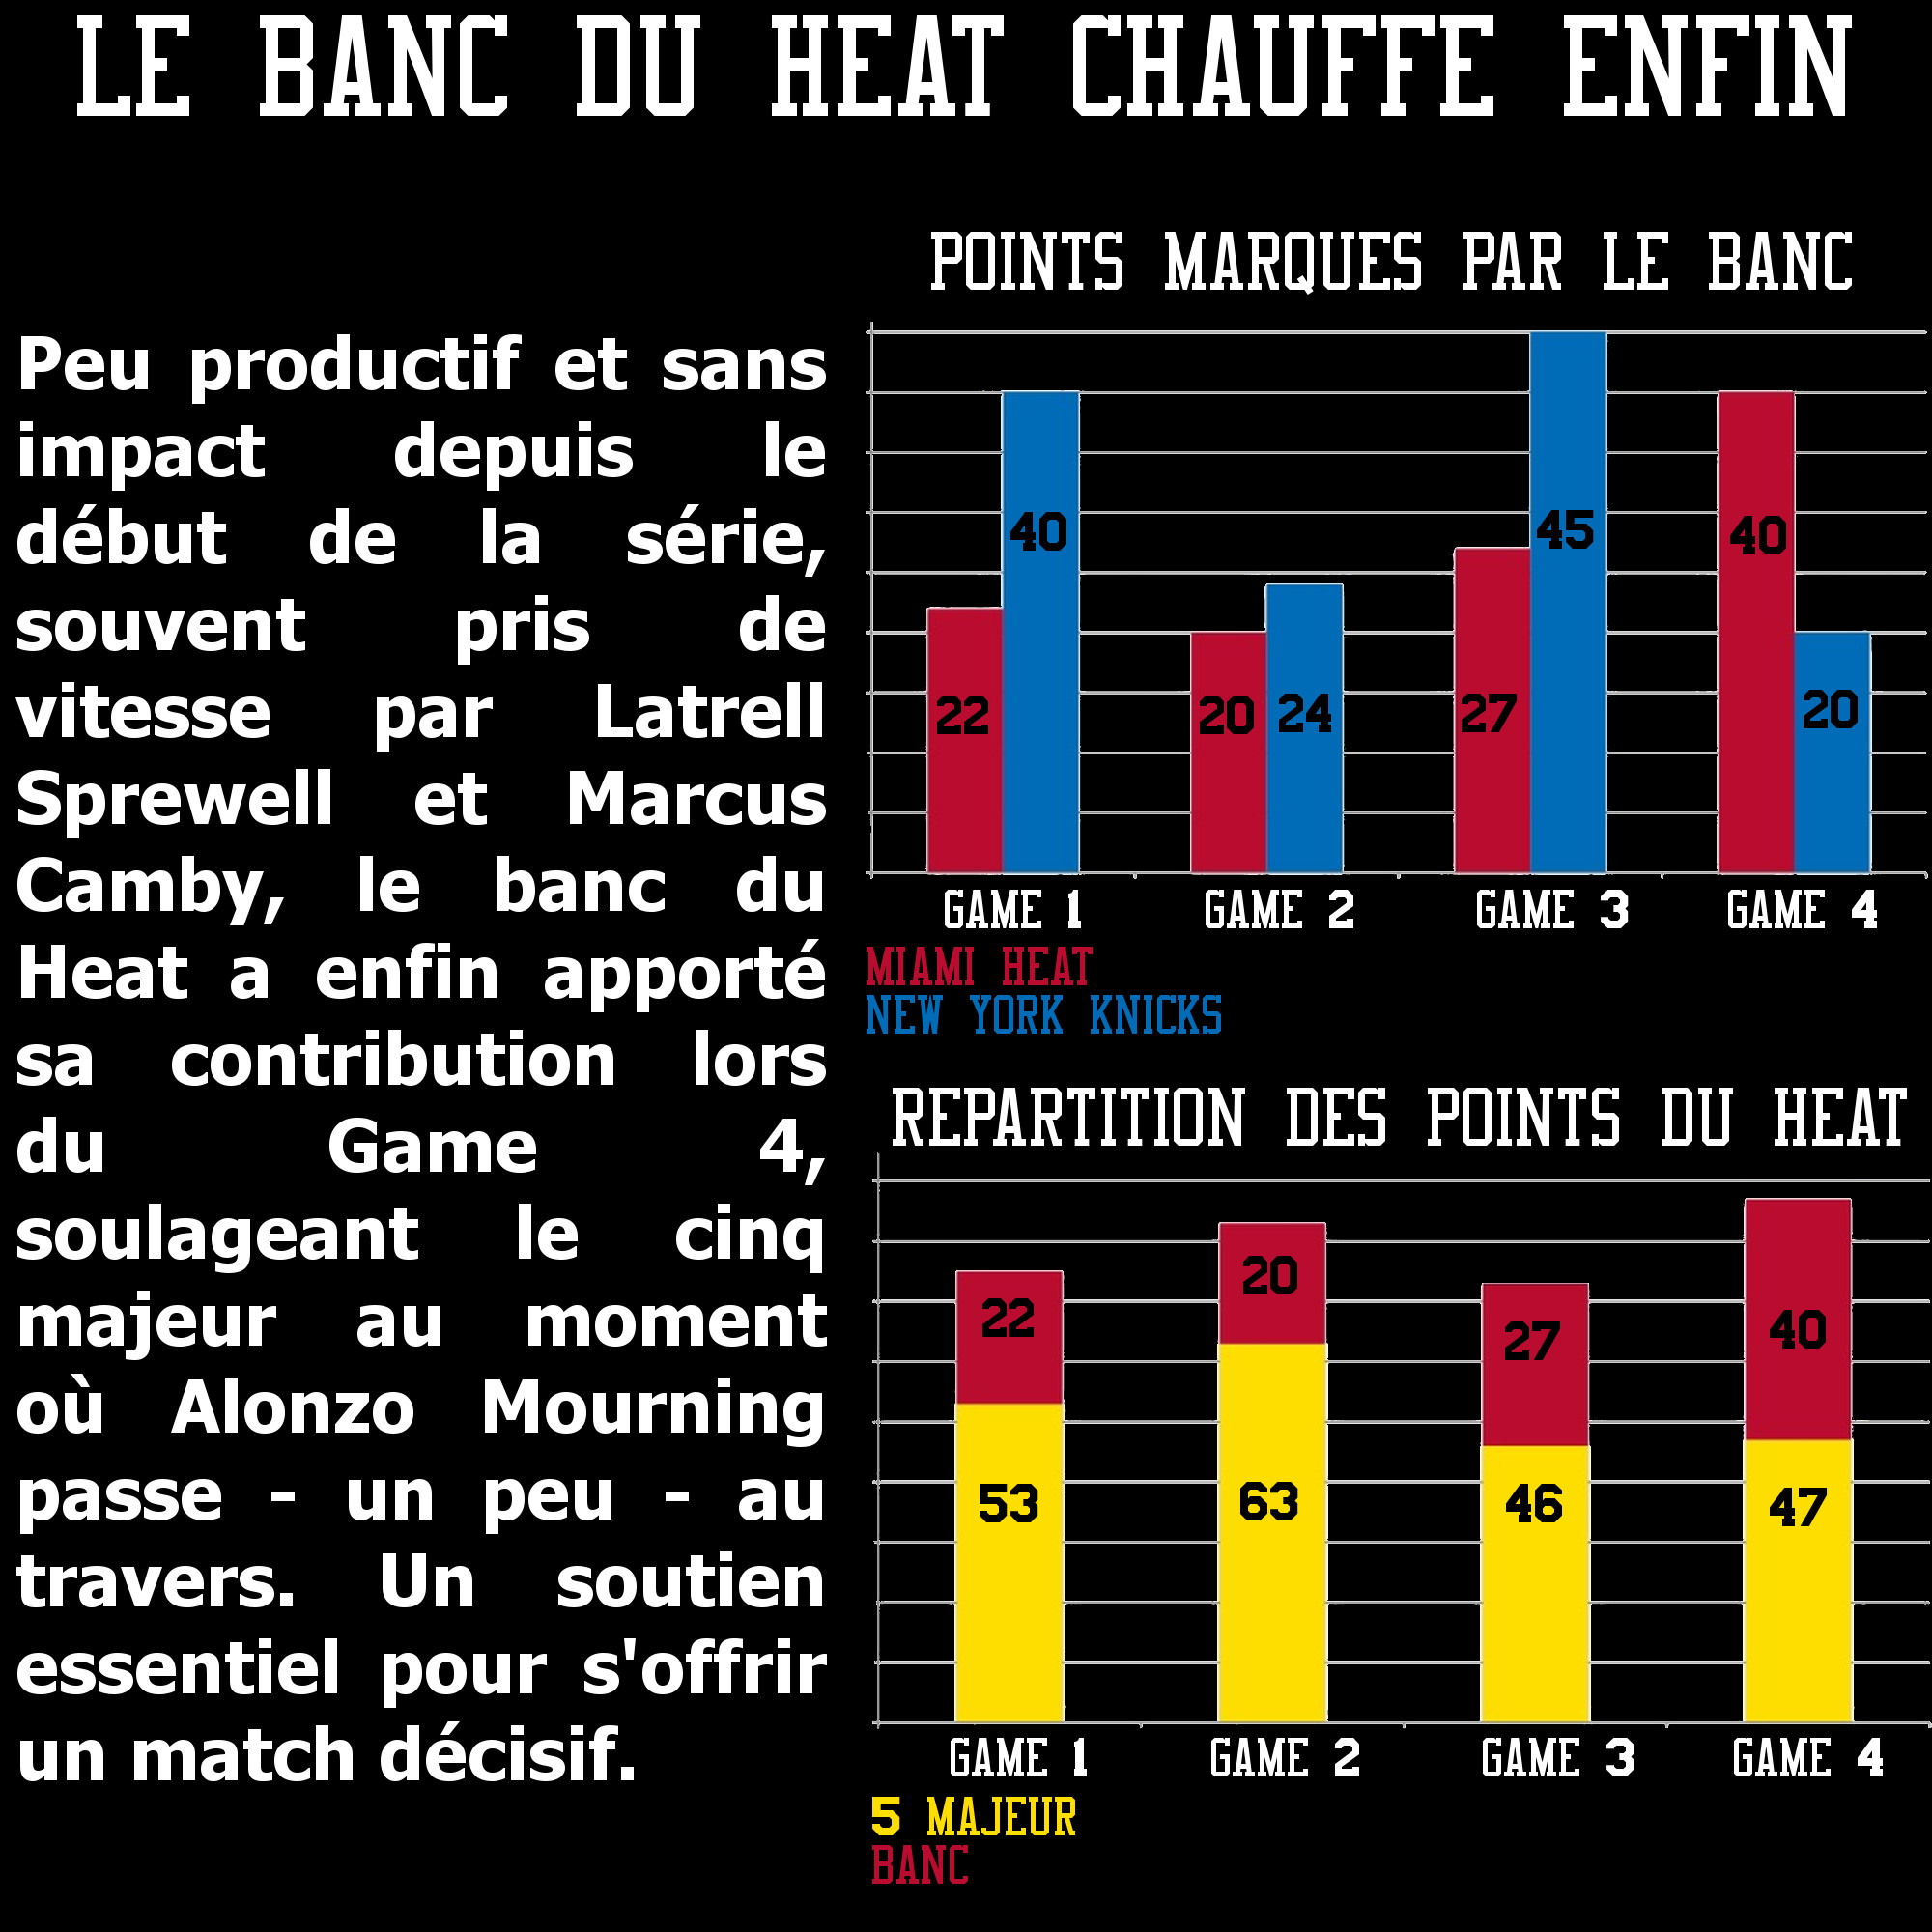 Comparaison des bancs Heat vs Knicks